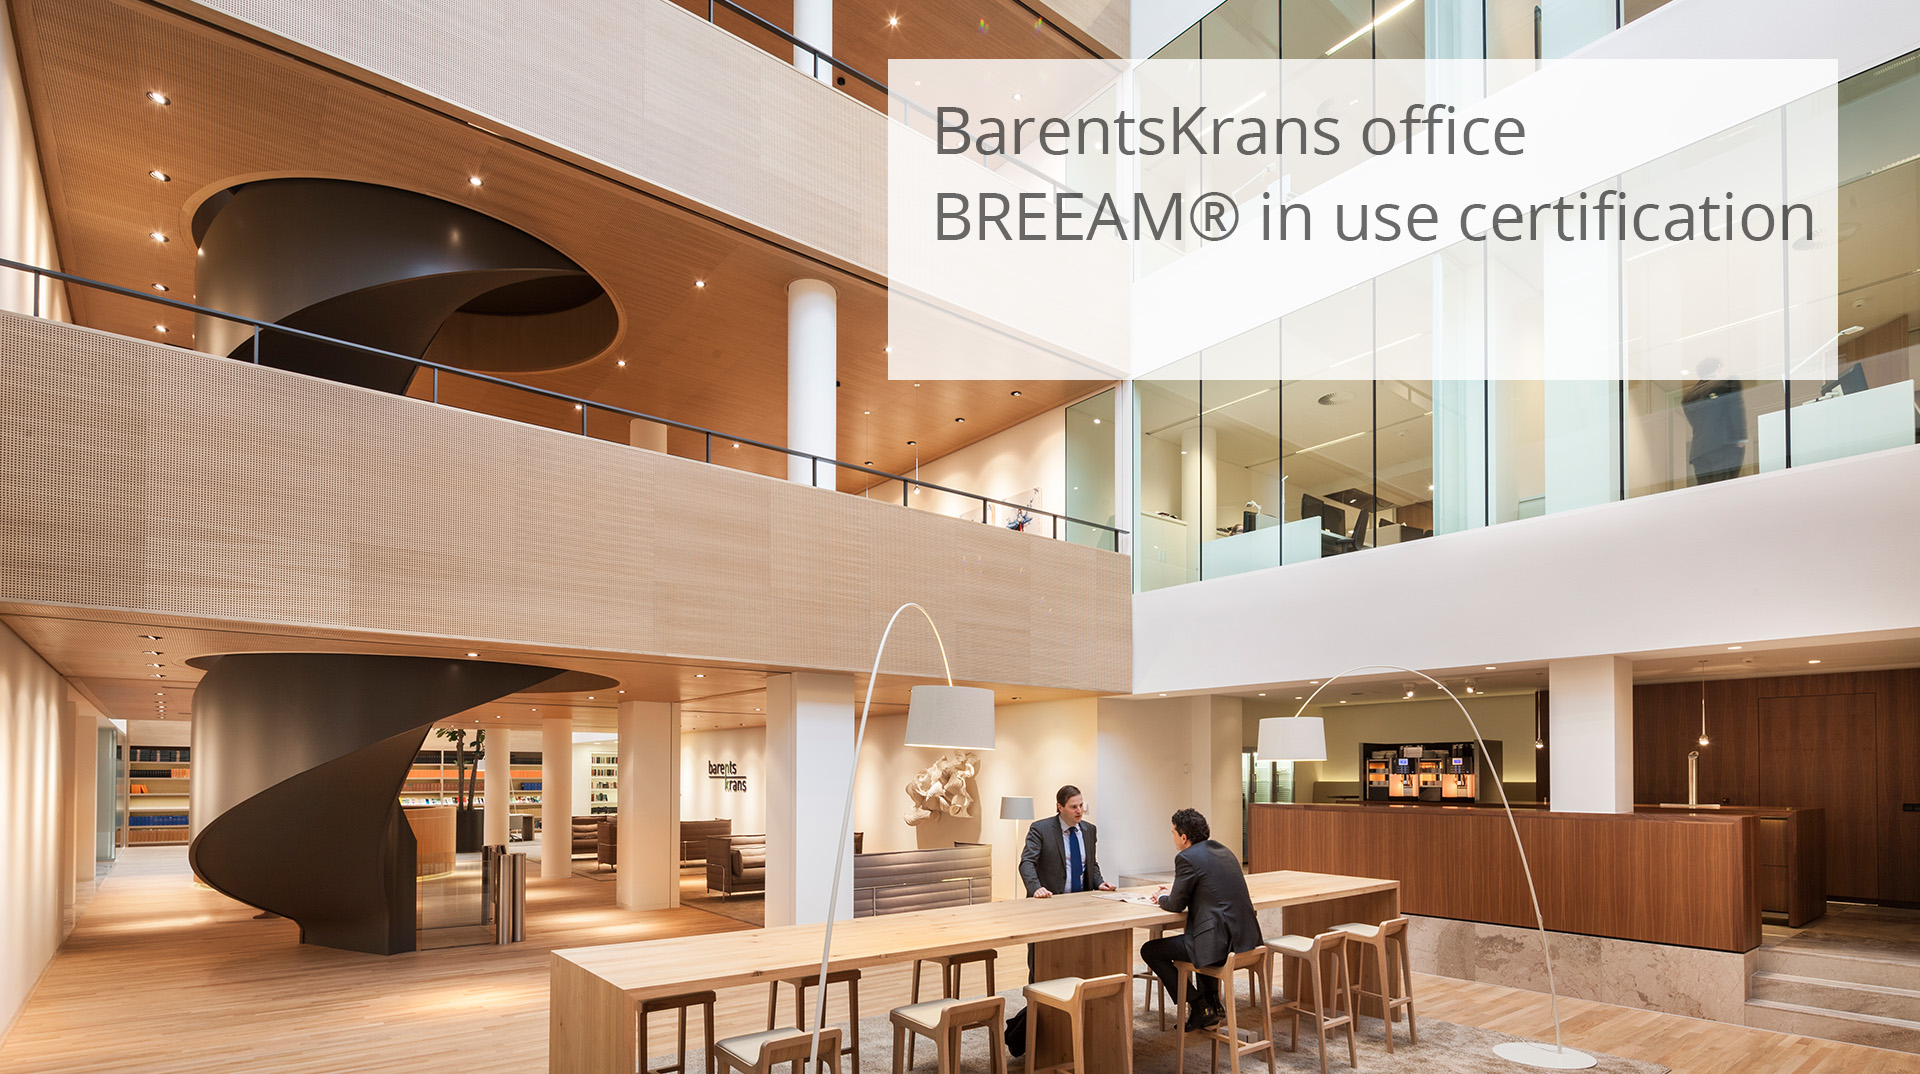 HofmanDujardin | BREEAM® in use BarentsKrans